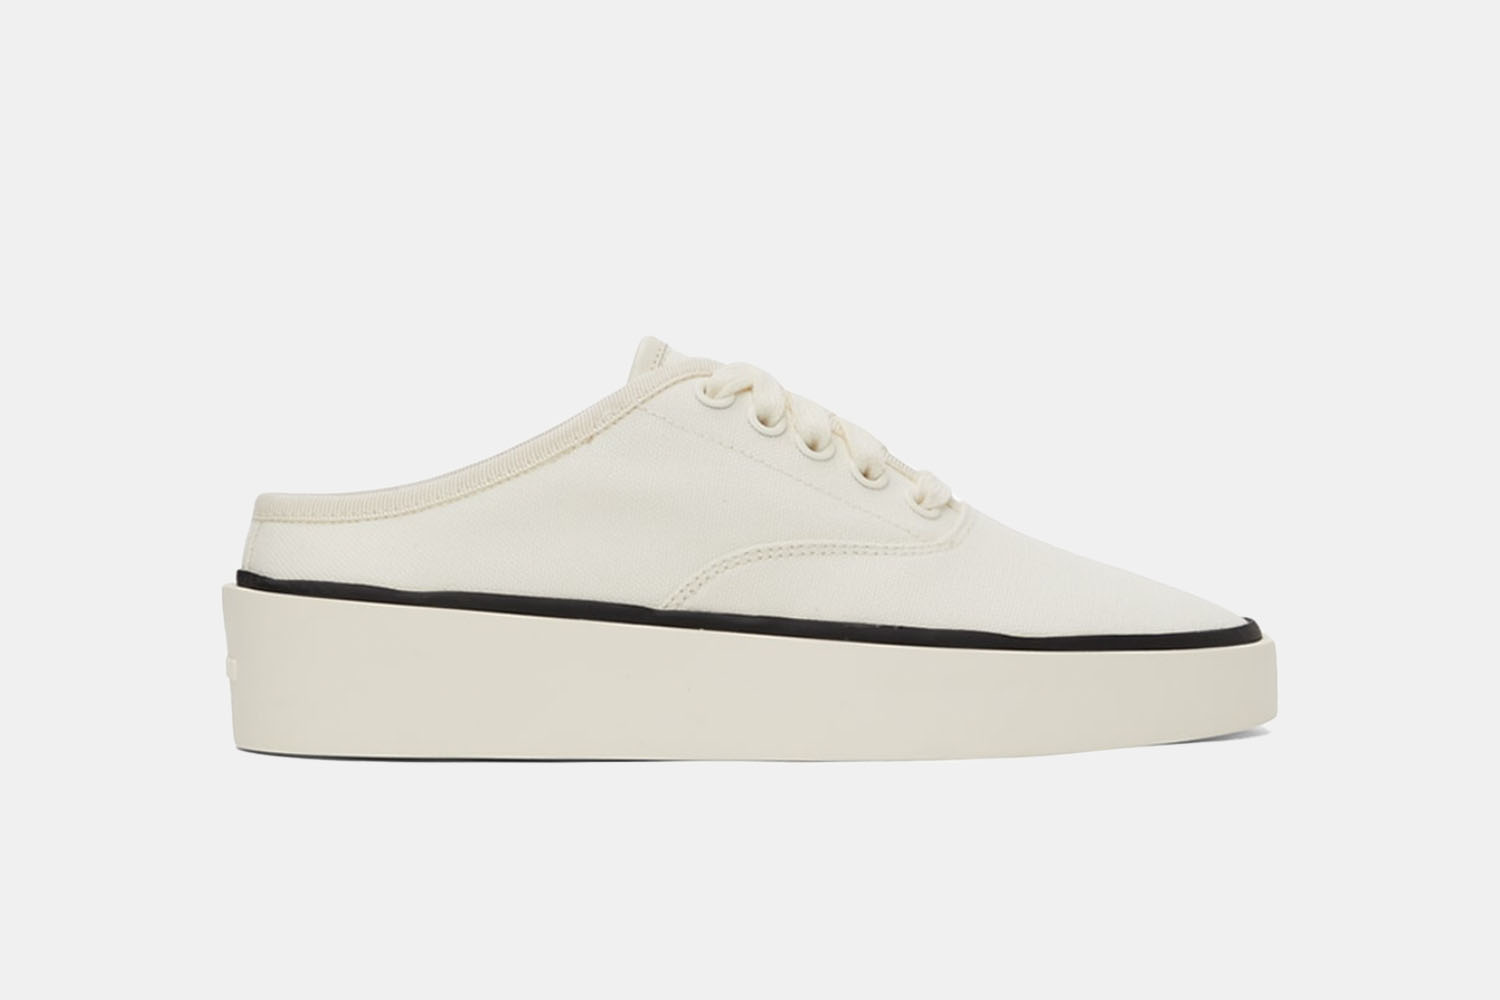 a all white sneaker with navy accents and a mule-style back.